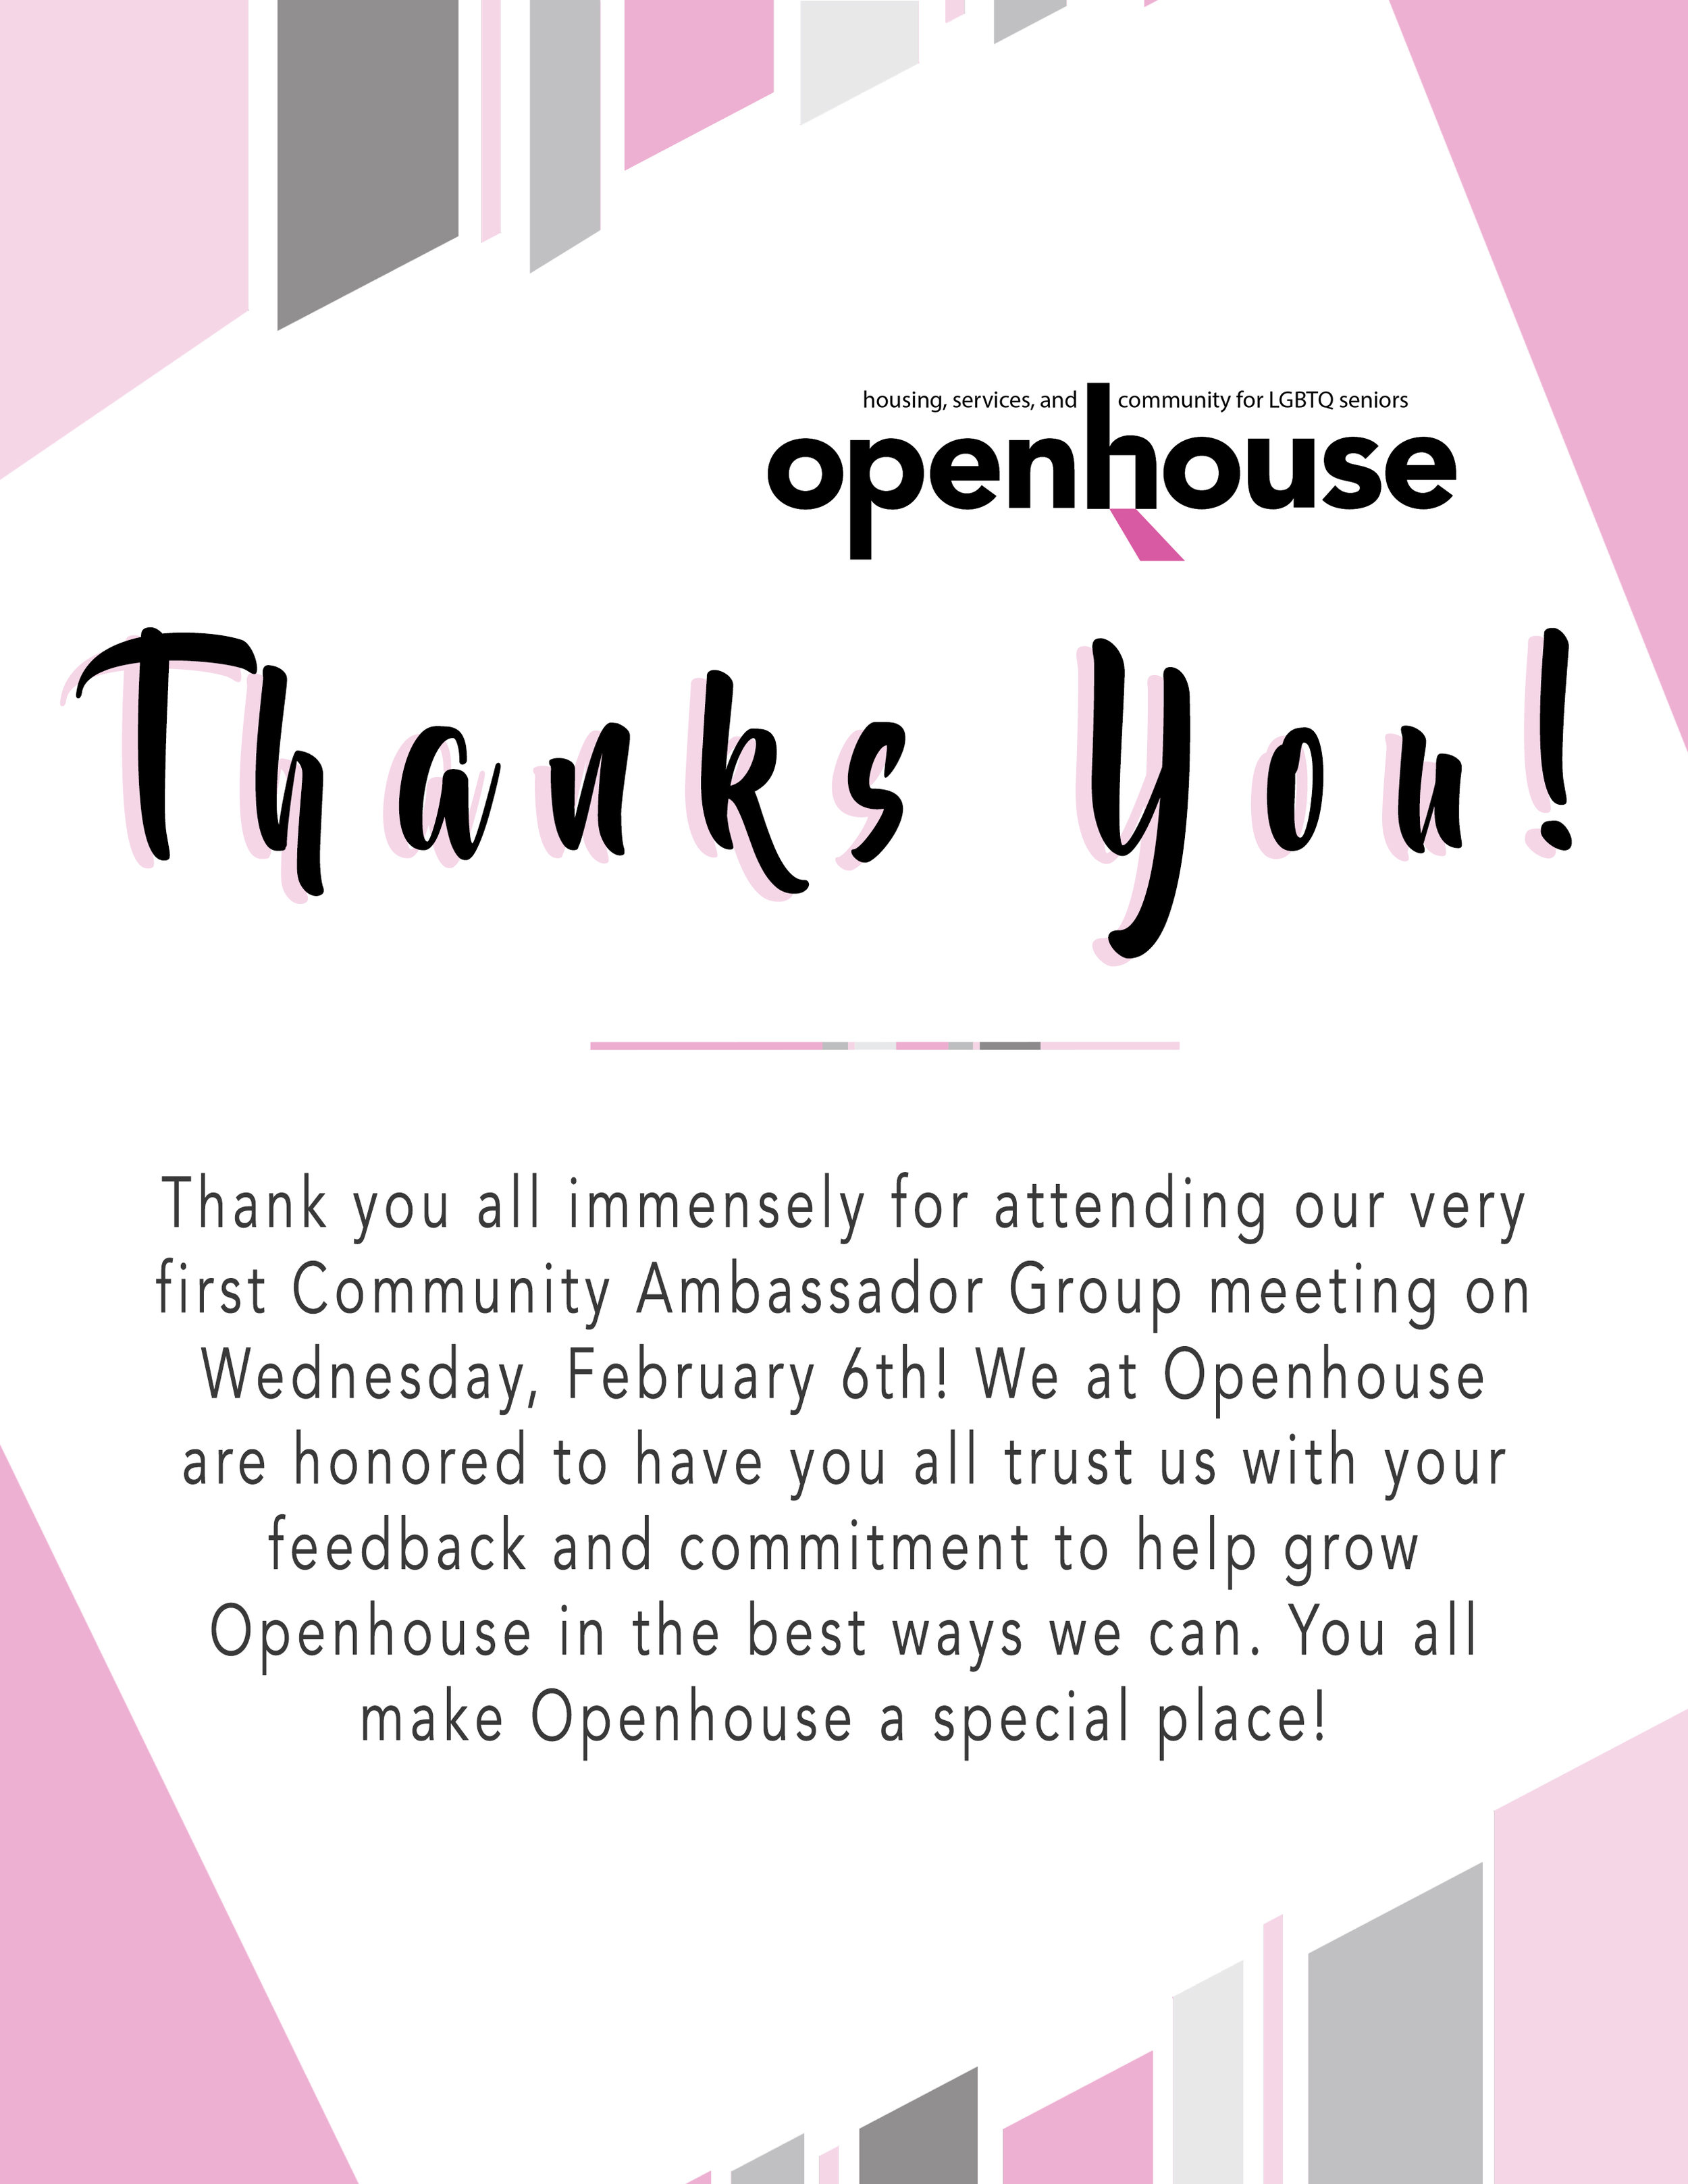 Thank you card I designed for our Community Ambassador Group which I facilitate.